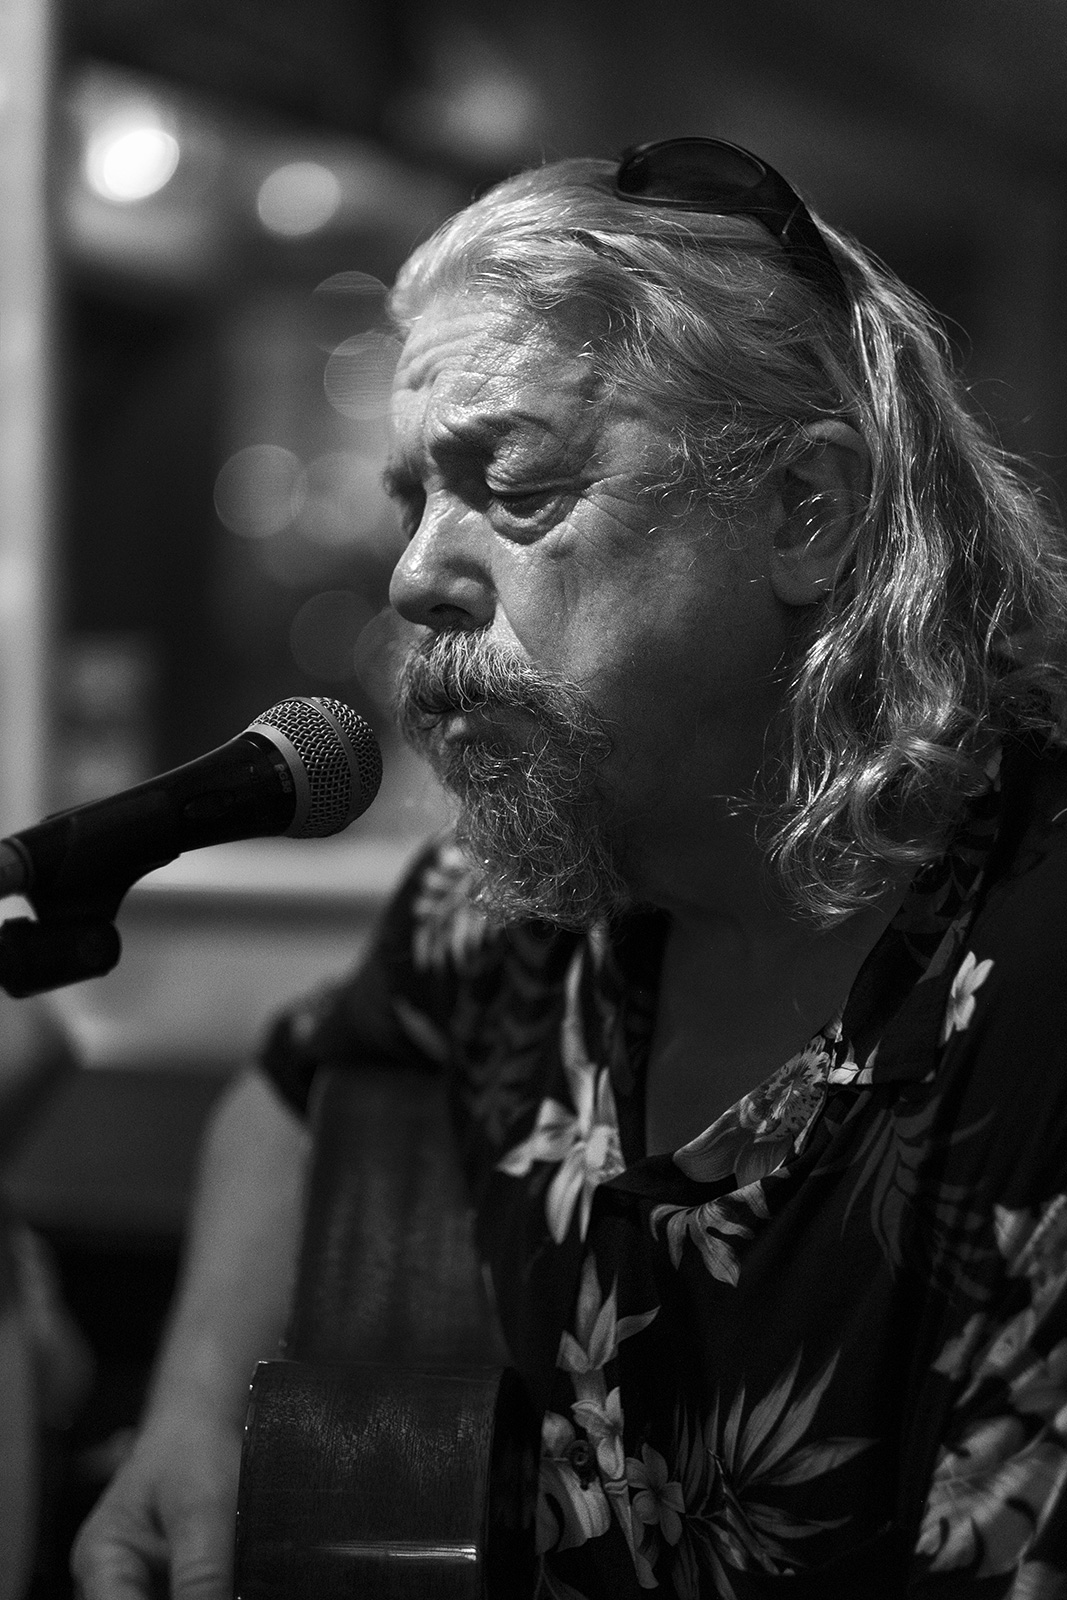 Portrait of the musician singer Dave Minns performing at the Shakespeares Head pub in Brighton UK, black and white documentary photograph ©P. Maton 2019 eyeteeth.net